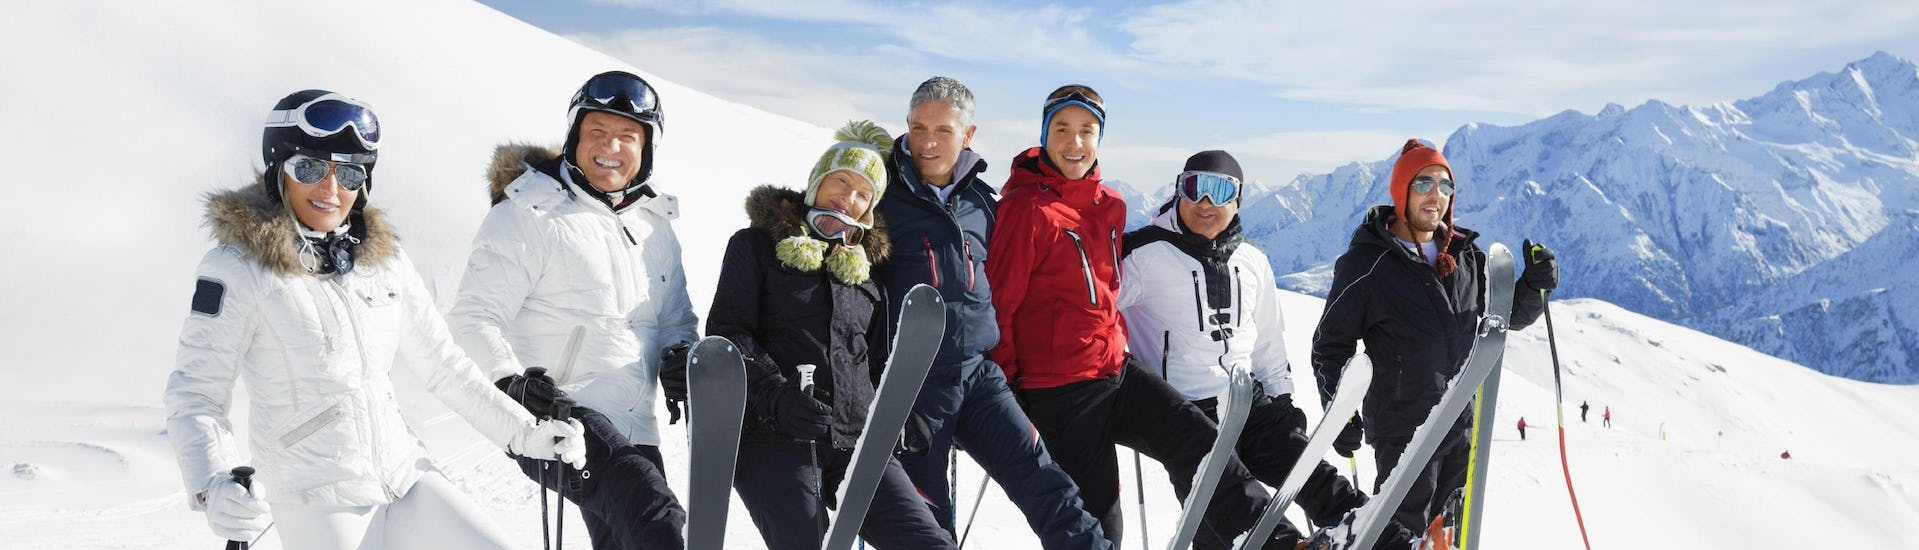 A group of skiers enjoying one of the many ski lessons for adults in the ski resort of Nordkette.